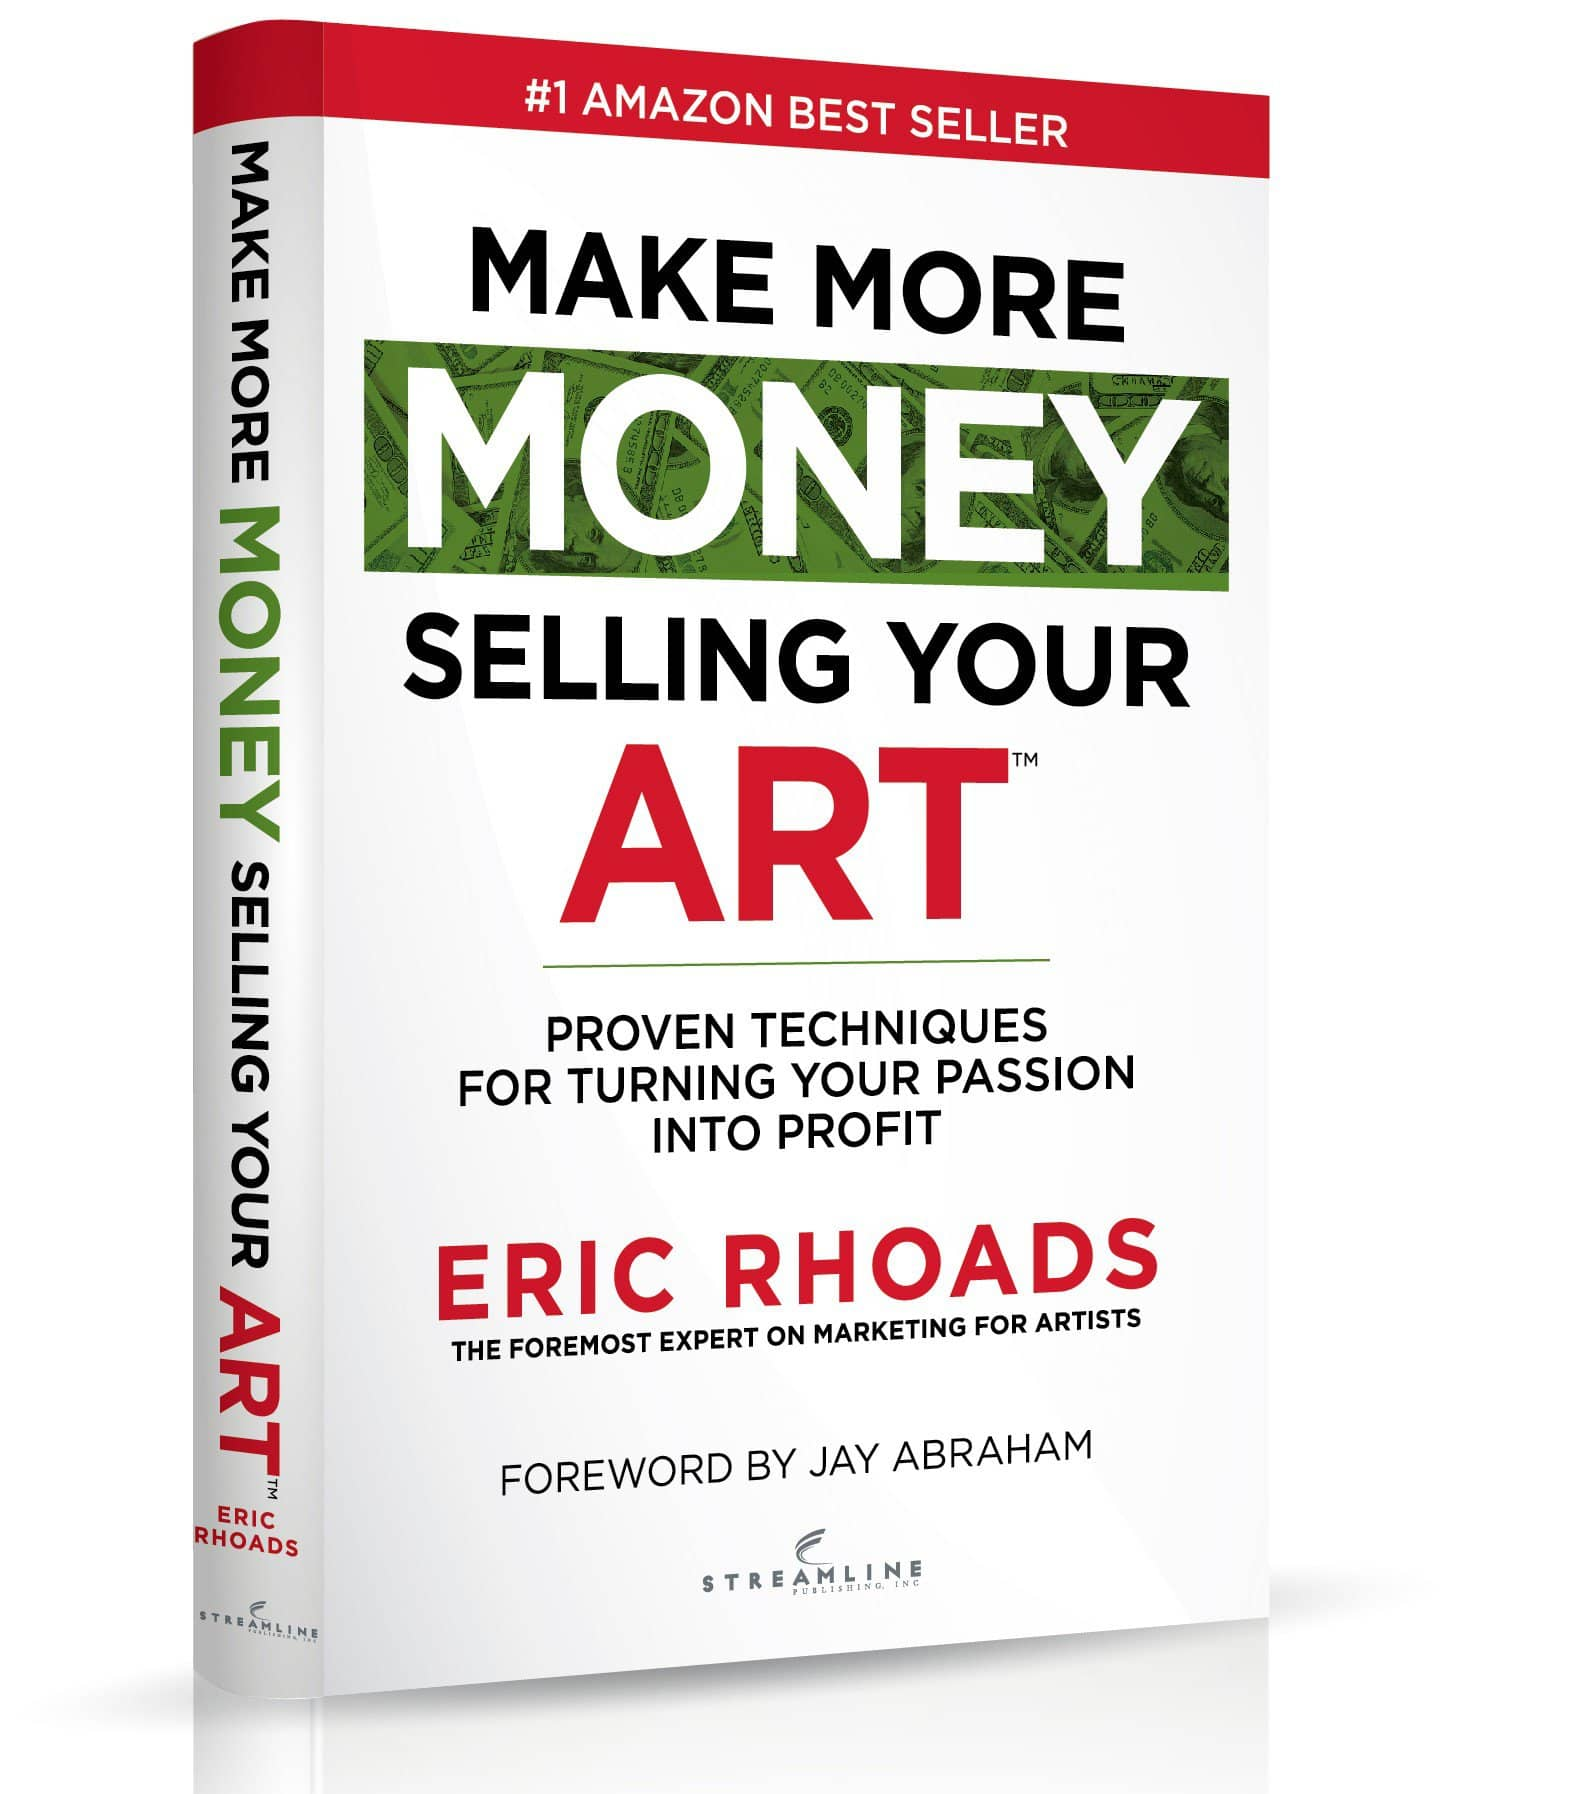 Eric Rhoads: Make More Money Selling Your Art Book